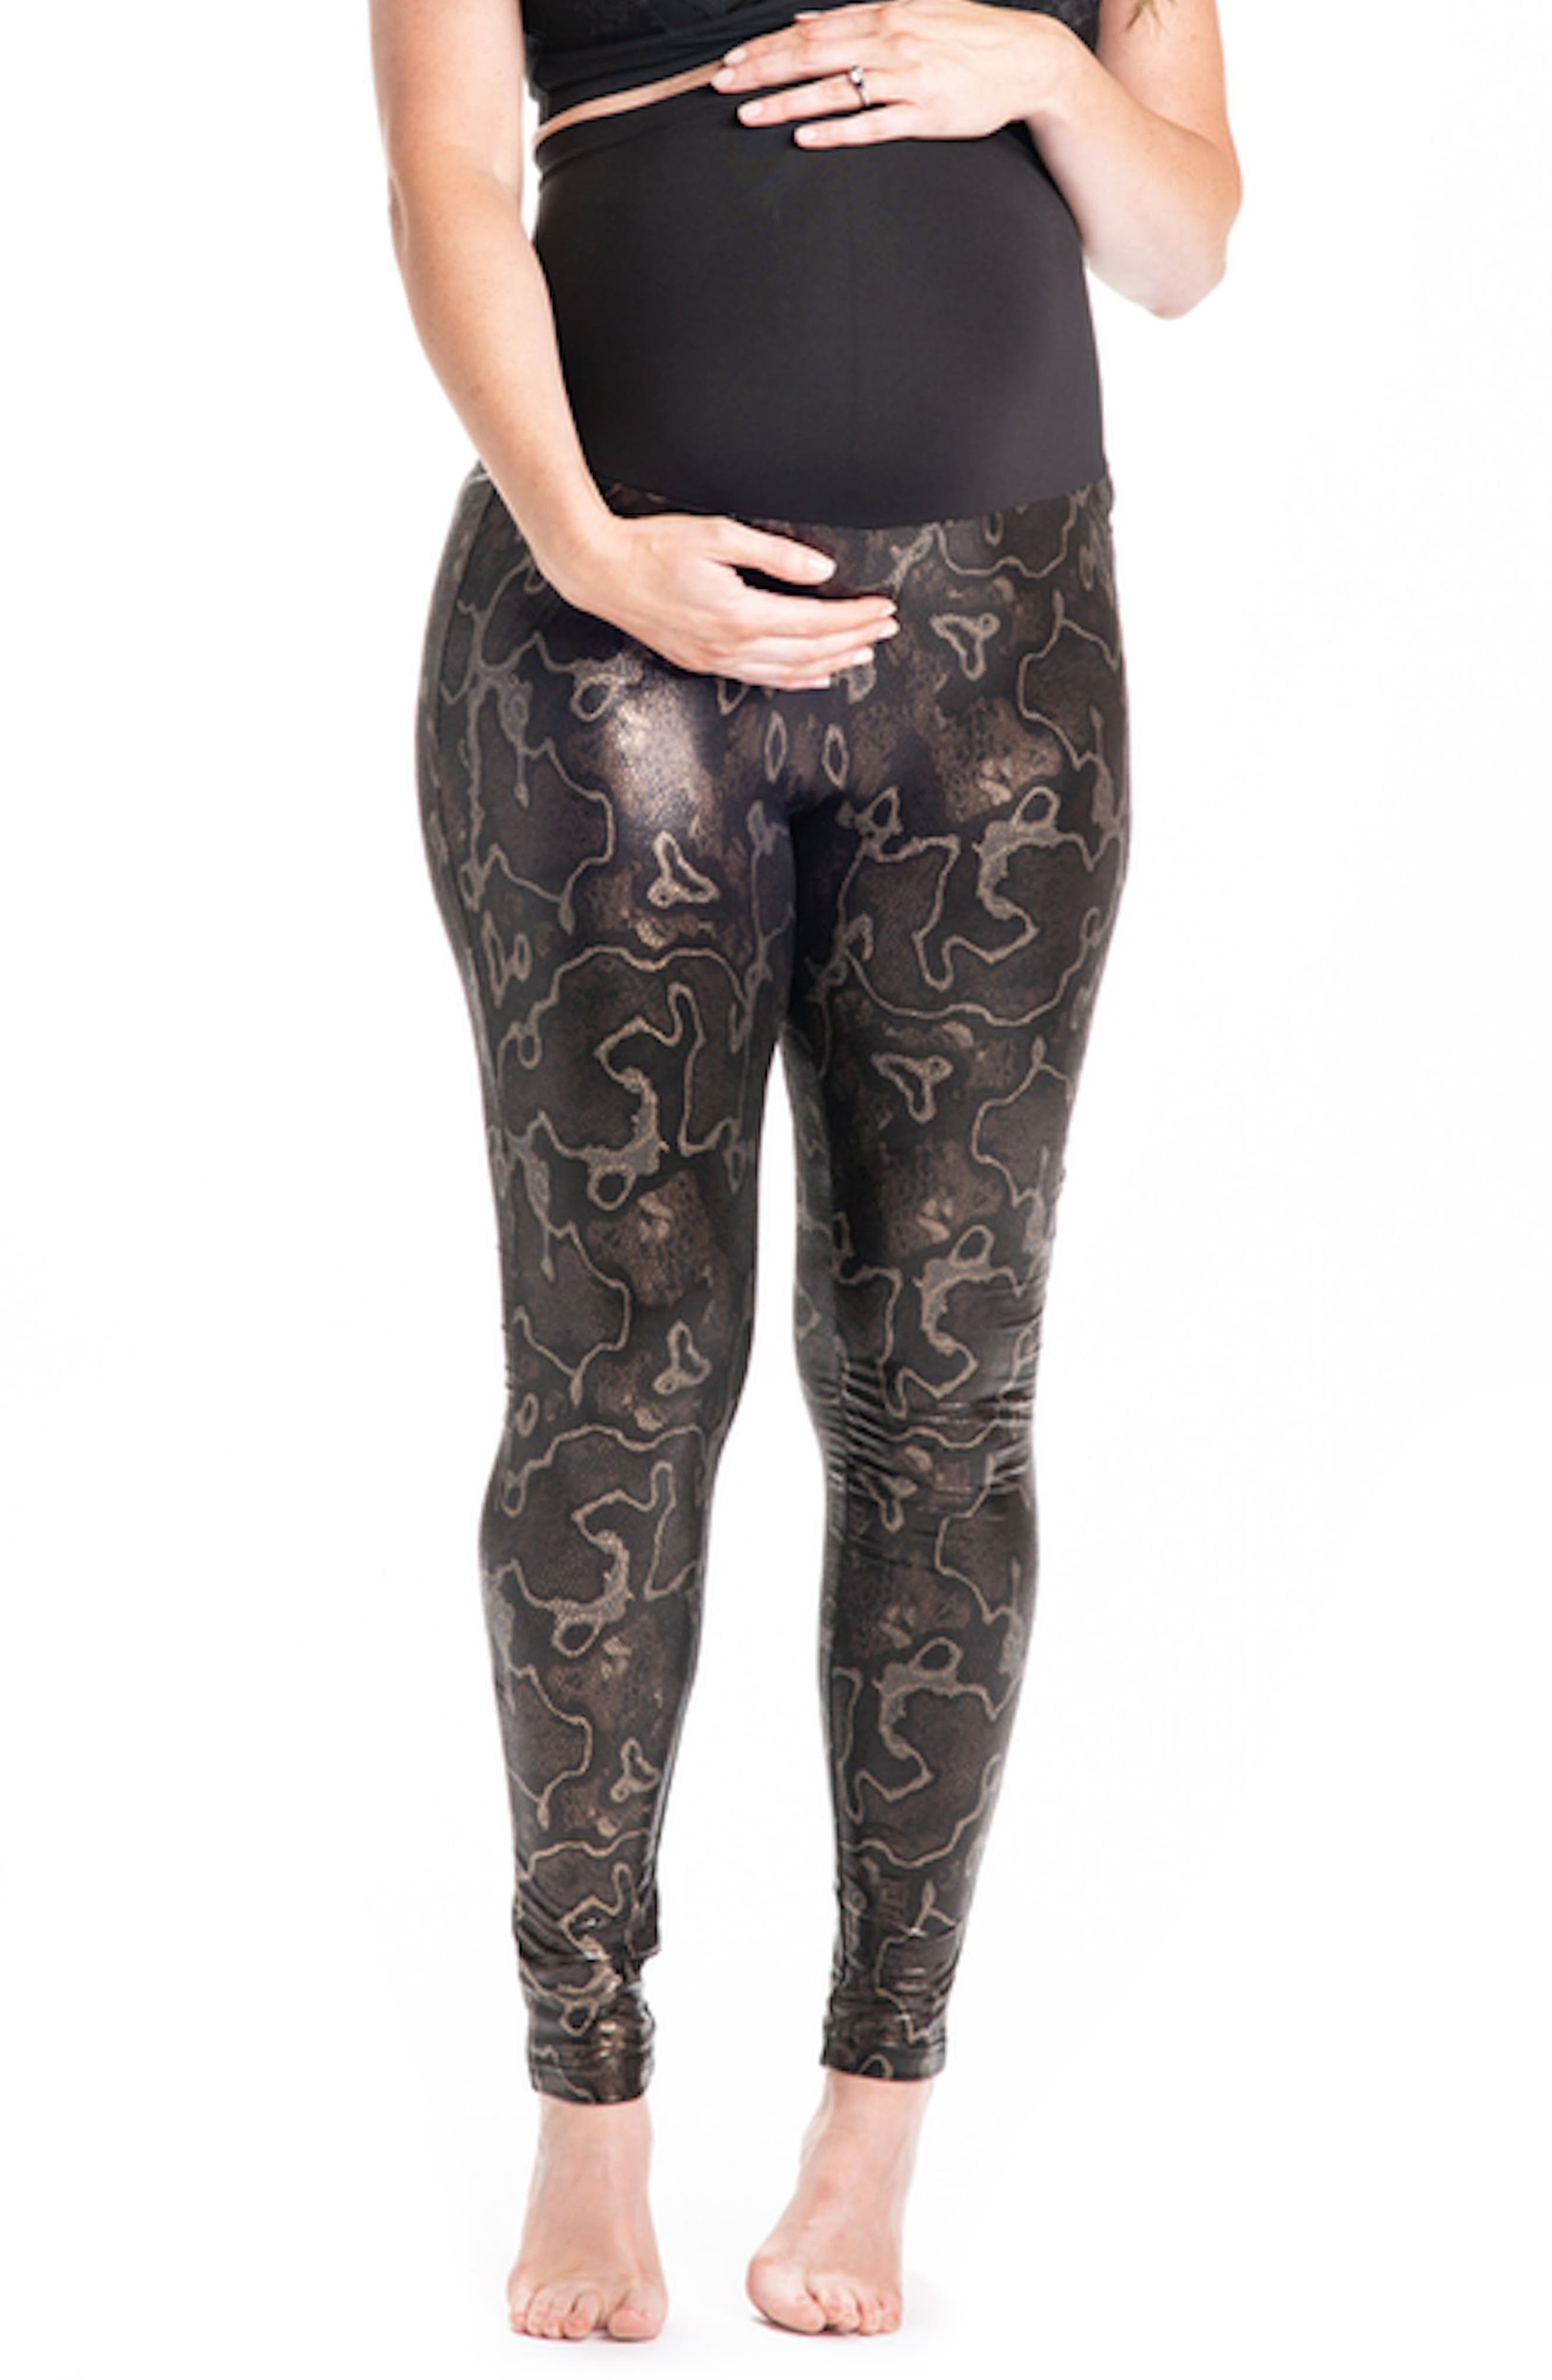 Boa Print Maternity Leggings,                             Main thumbnail 1, color,                             Dark Brown